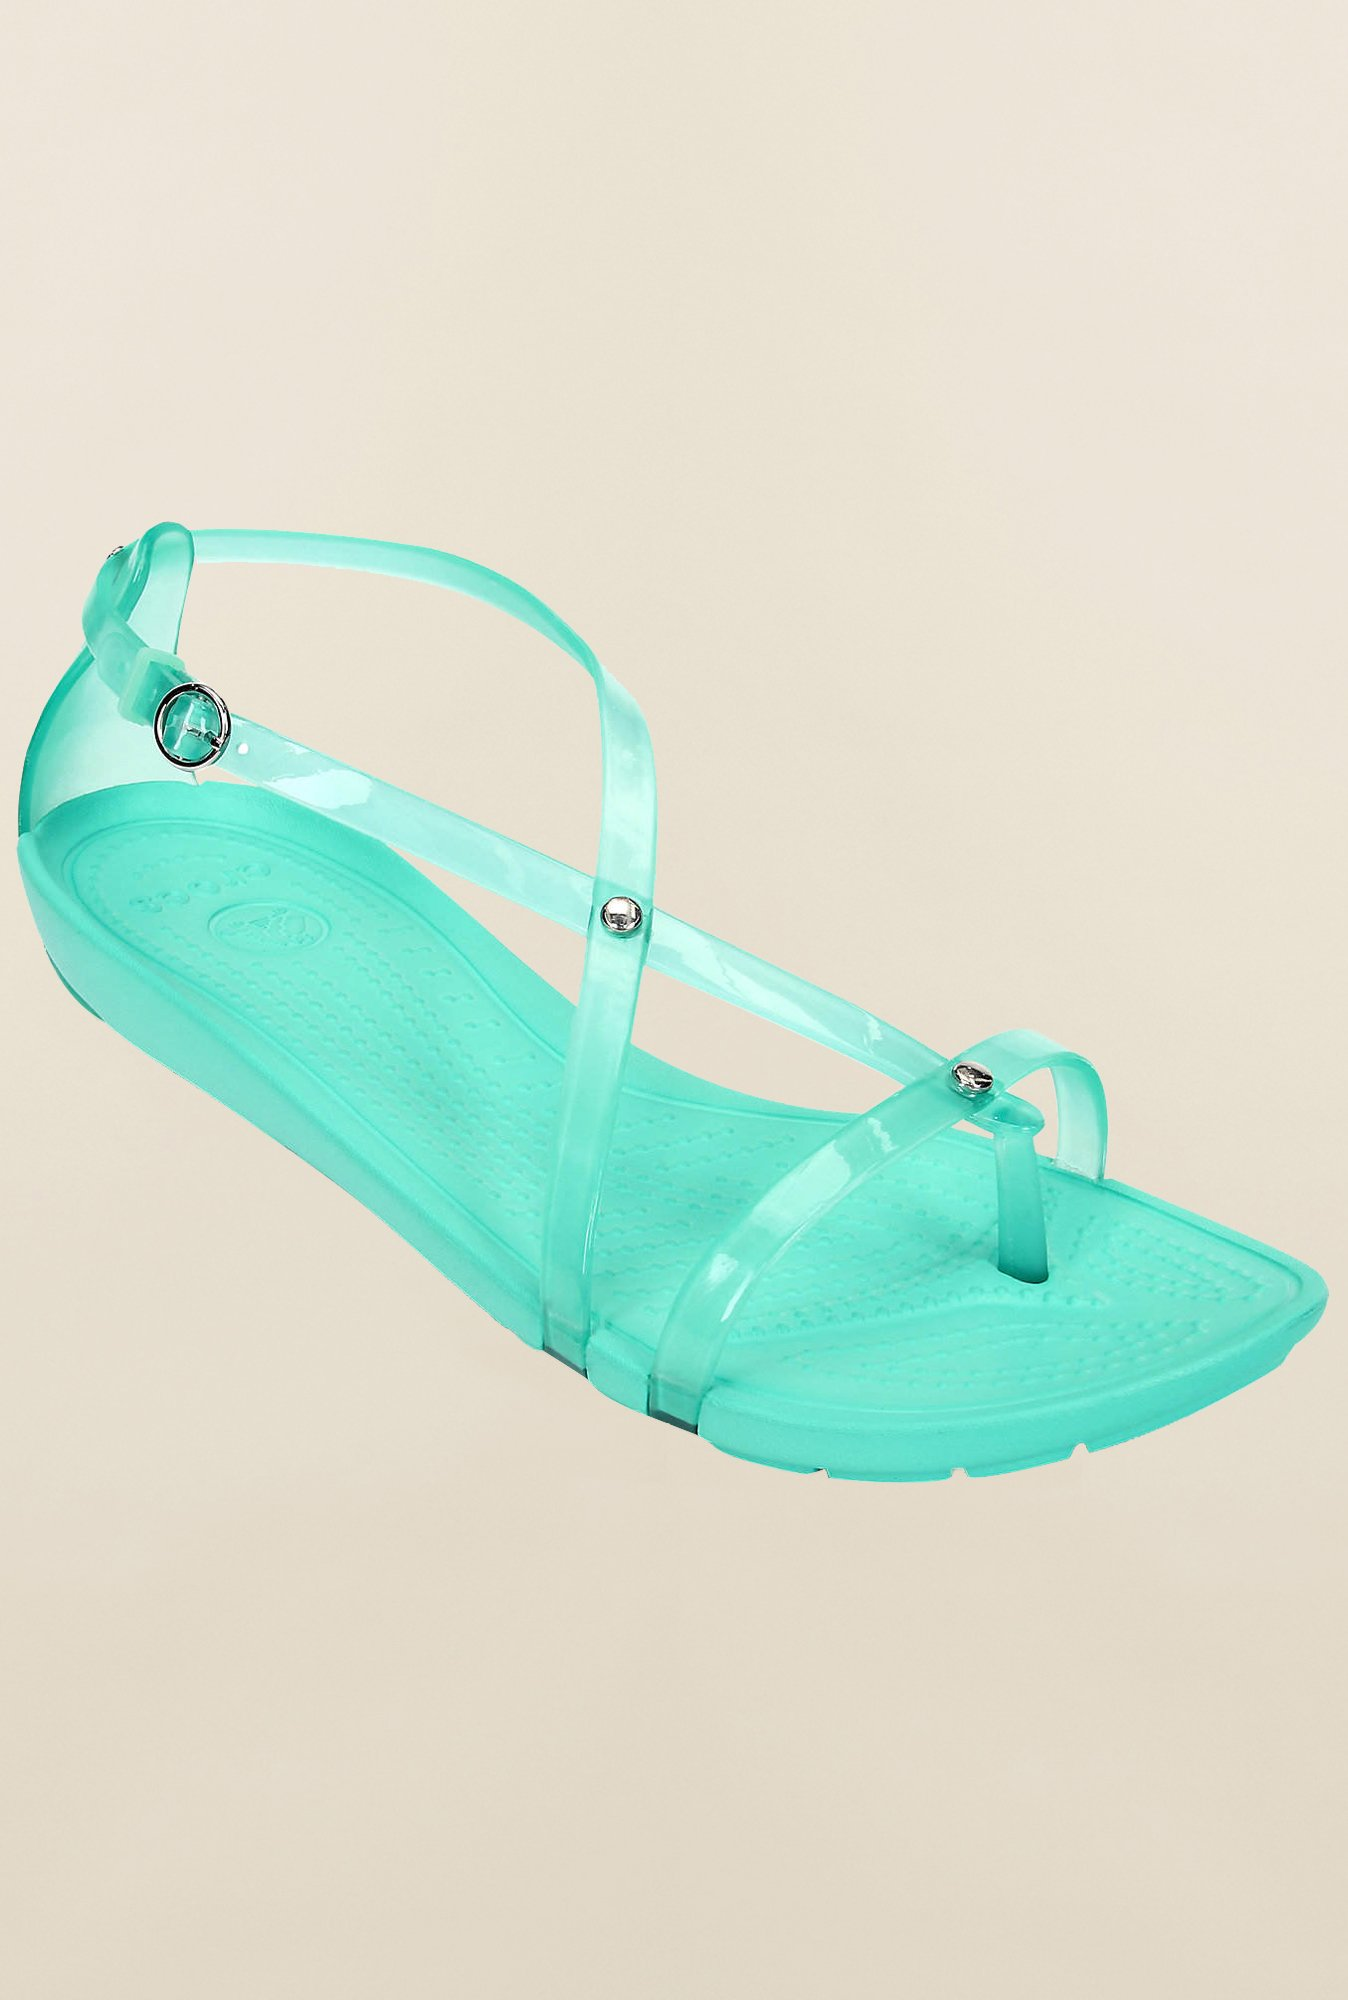 Crocs Really Sexi Island Green Cross Strap Sandals